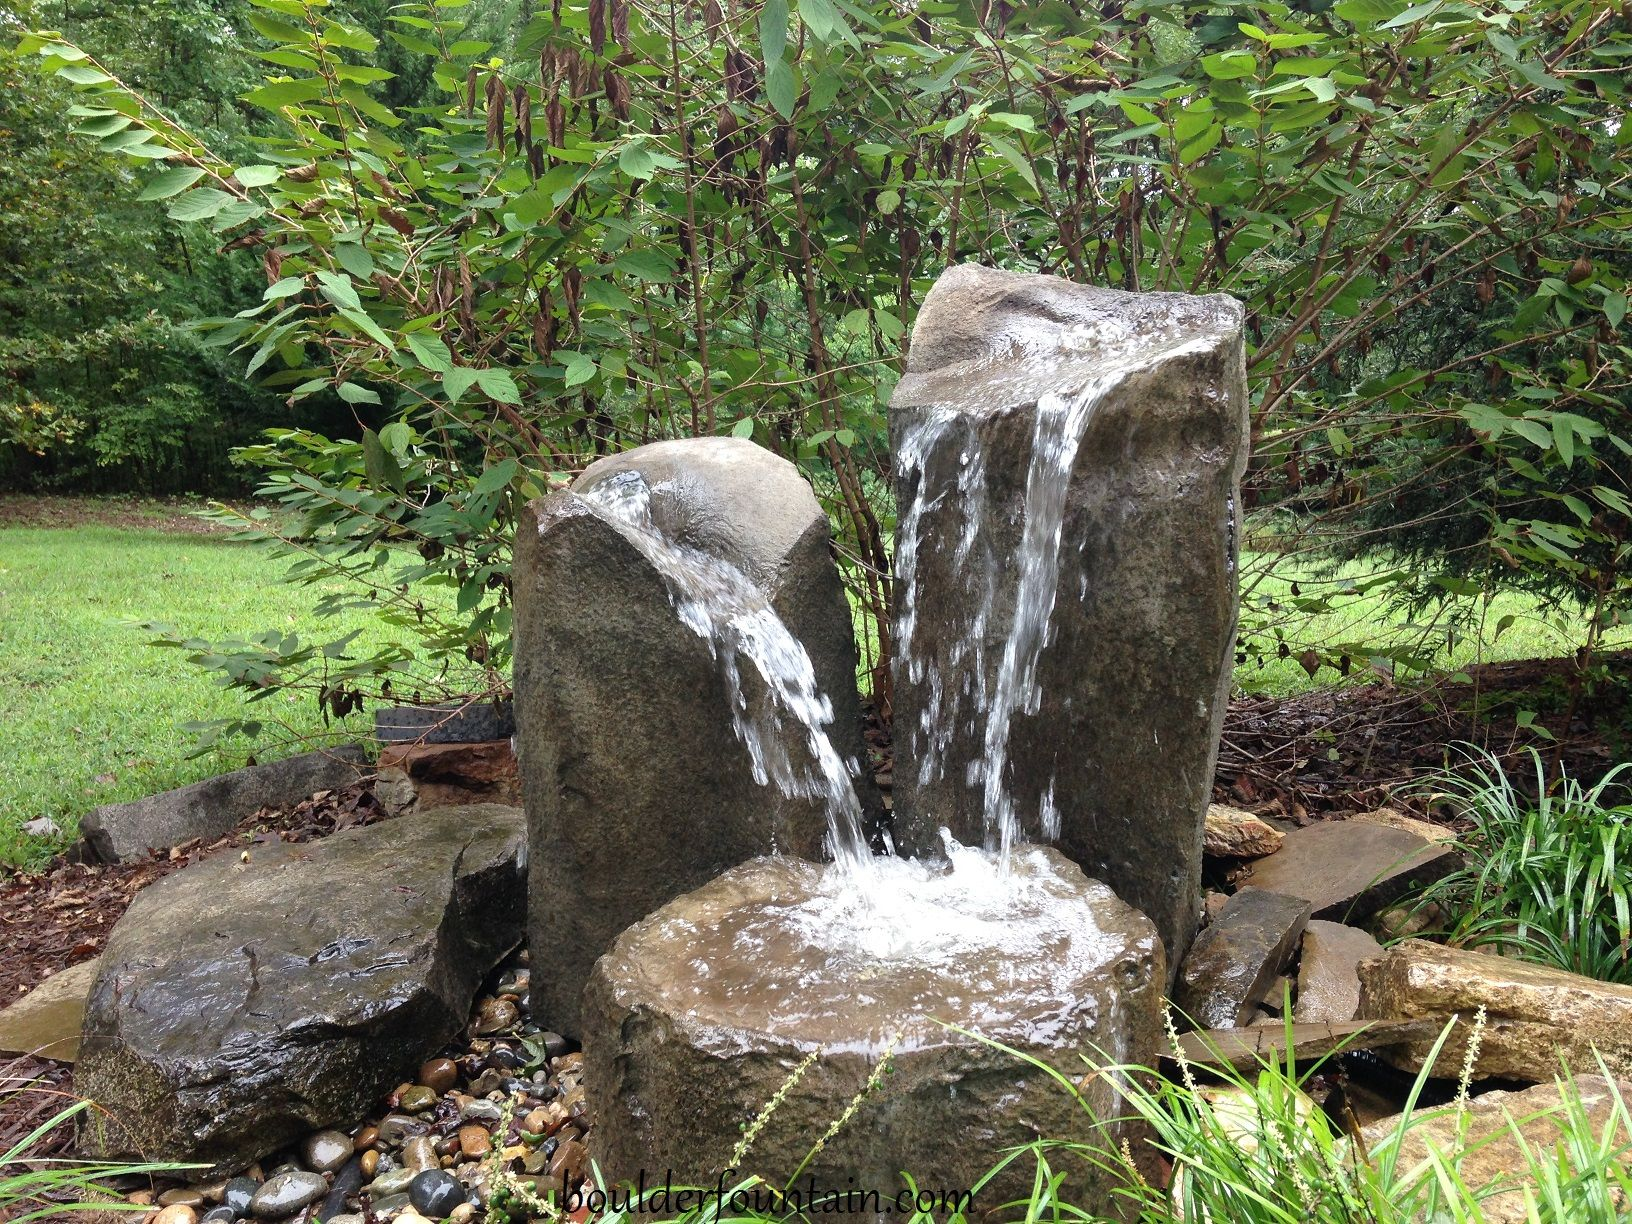 Basalt Column Fountain For More Info Including Videos Pricing Visit Us At Www Boulderfountain C Fountains Backyard Fountains Outdoor Water Fountains Outdoor